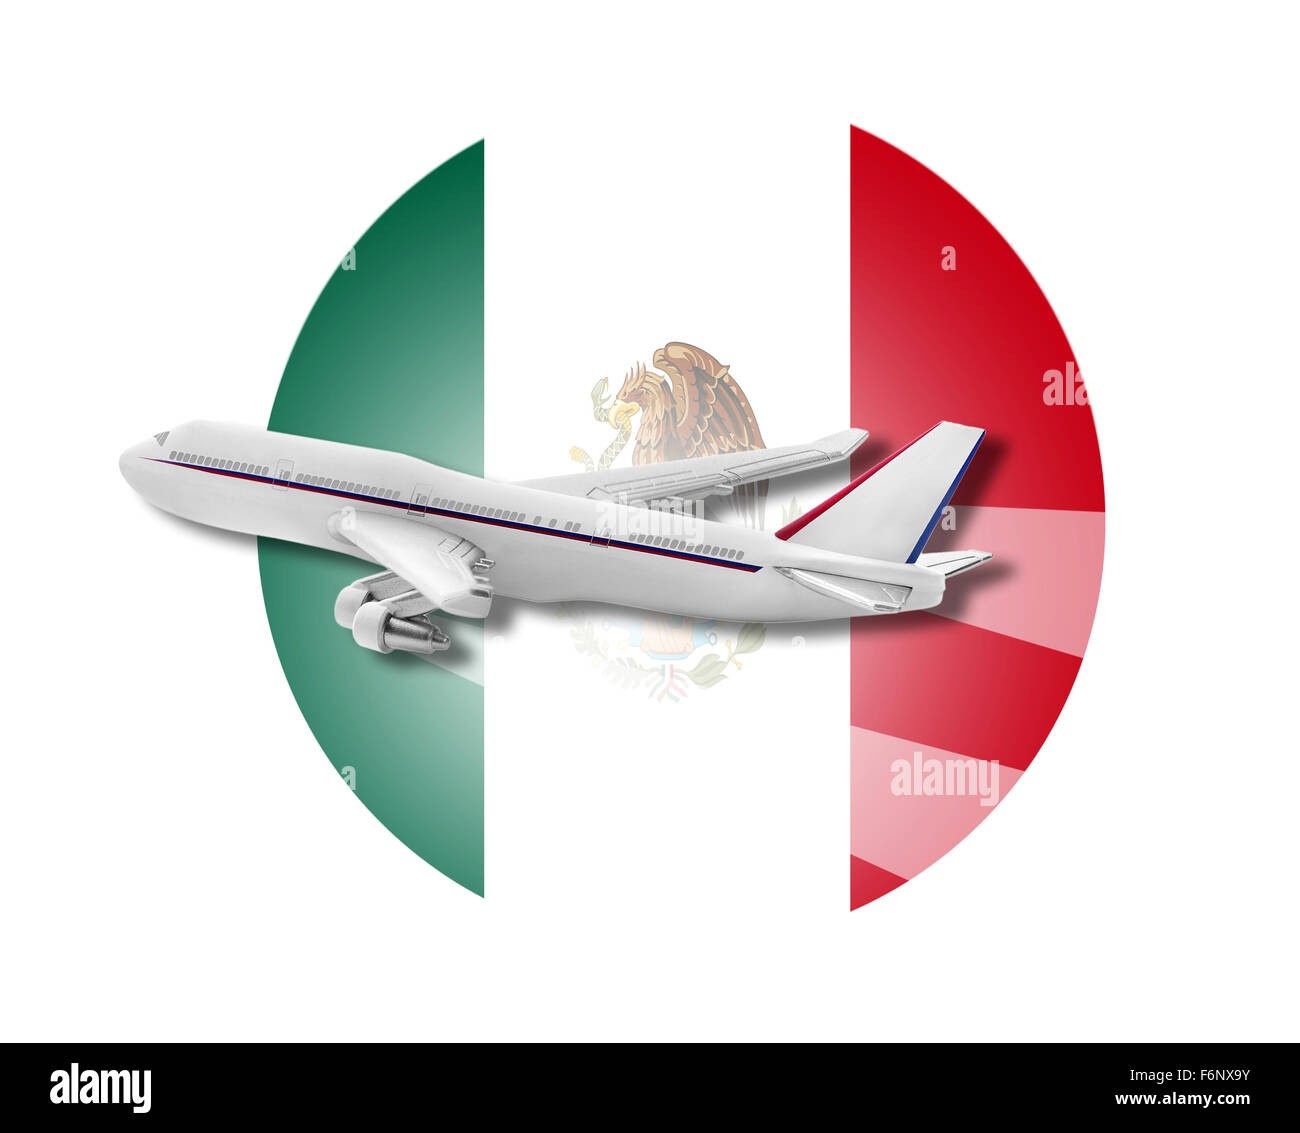 Plane and Mexico flag. - Stock Image